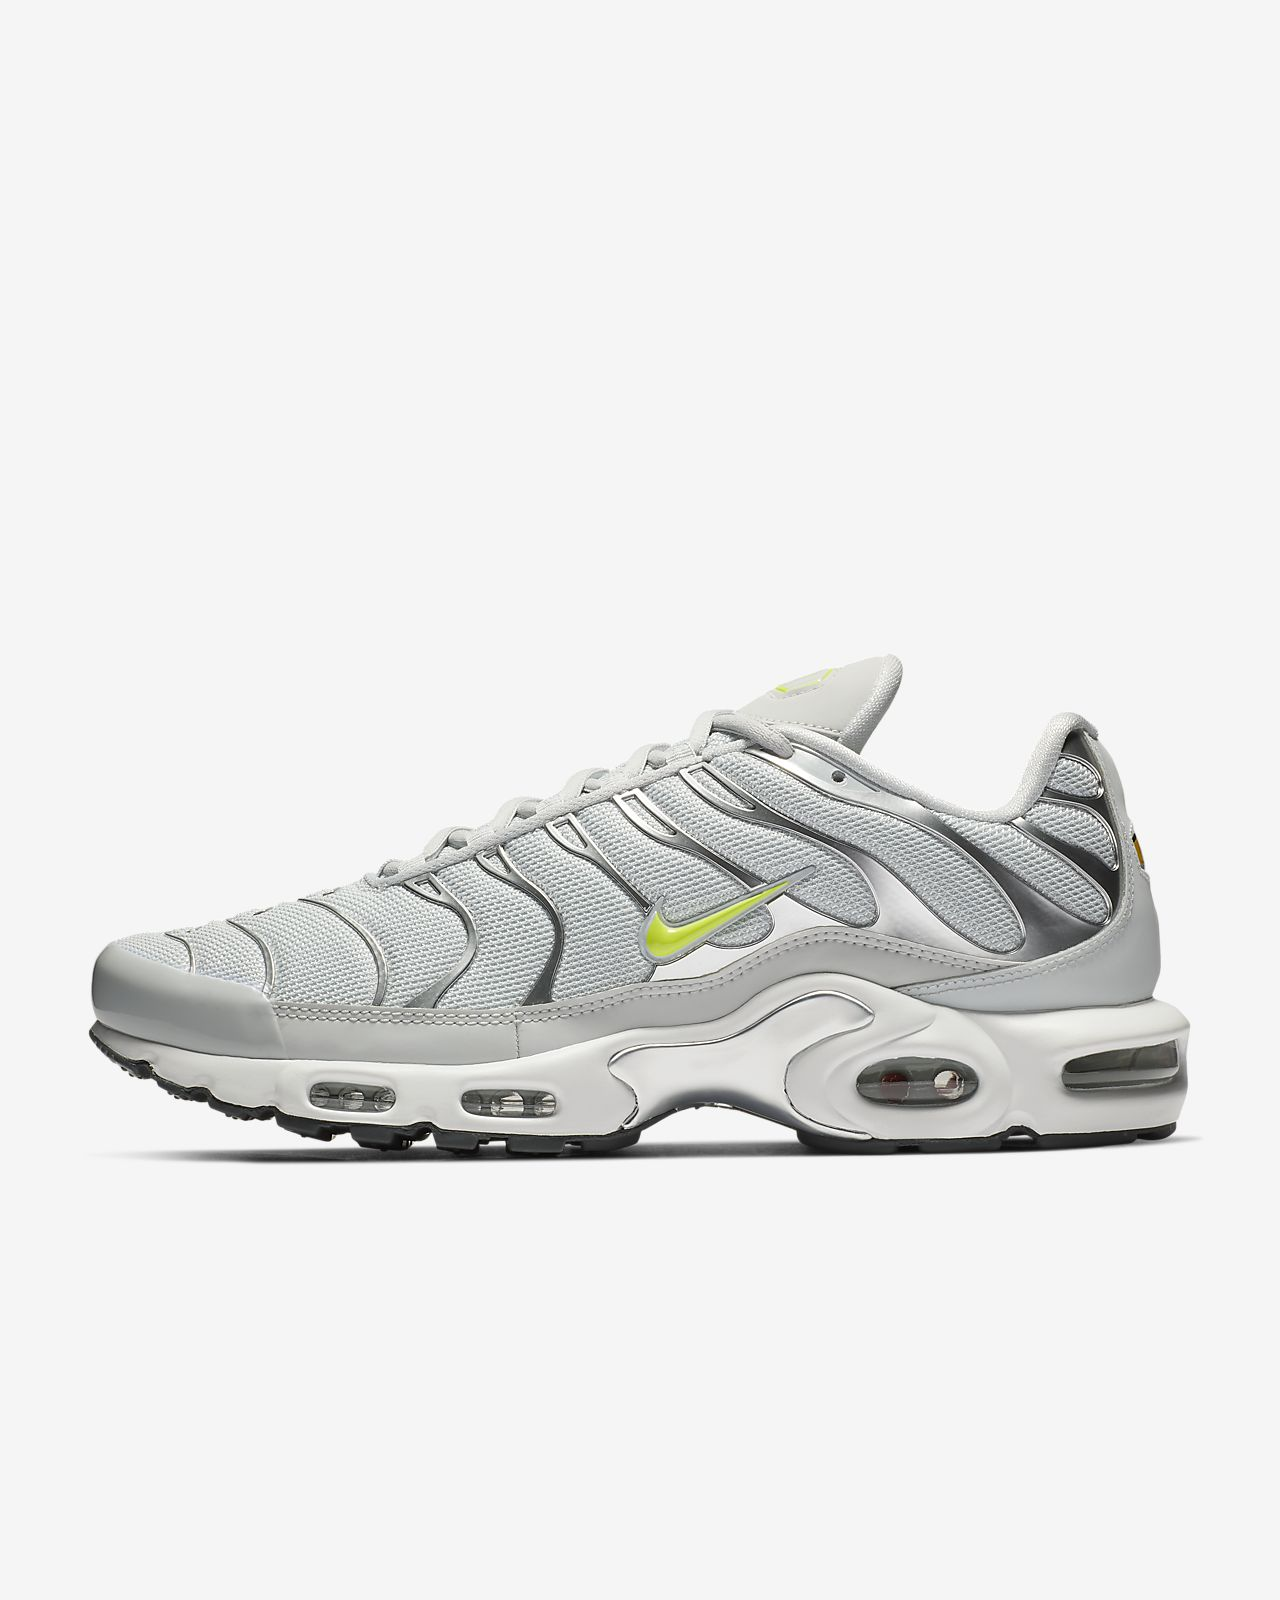 meet 51aa4 047e9 ... Nike Air Max Plus TN SE Men s Shoe